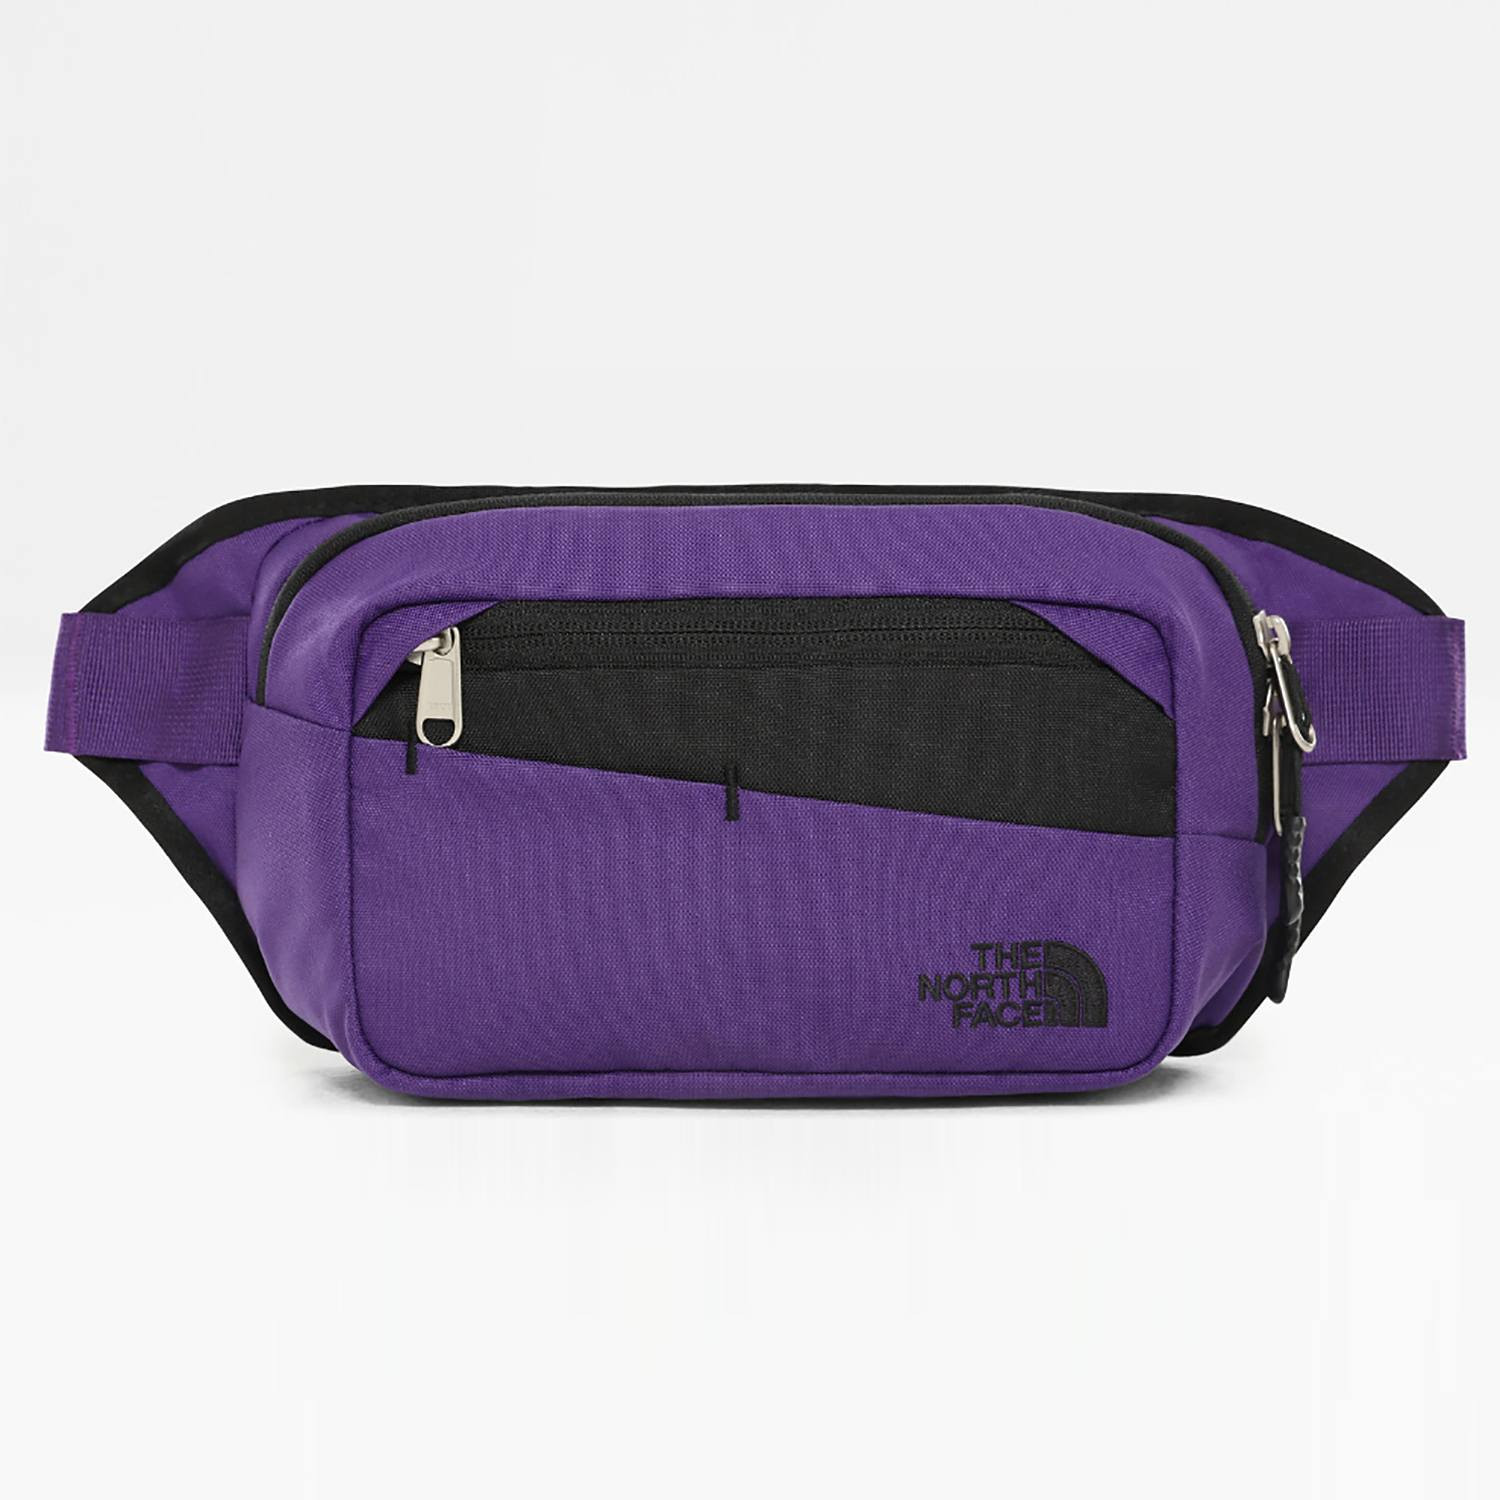 THE NORTH FACE BOZER HIP PACK II (9000036576_41143)